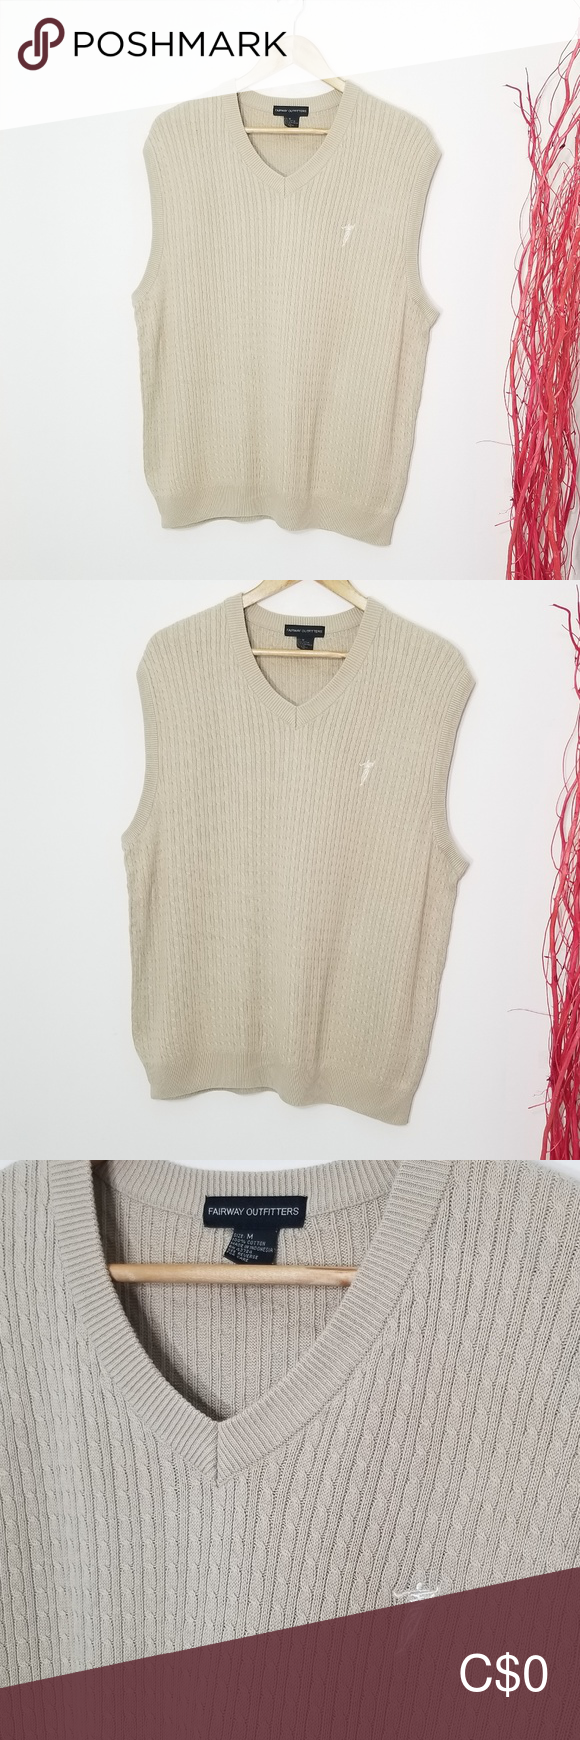 Fairway Outfitters Cable Knit Khaki Sweater Vest In 2020 Sweaters Cable Knit Knitting